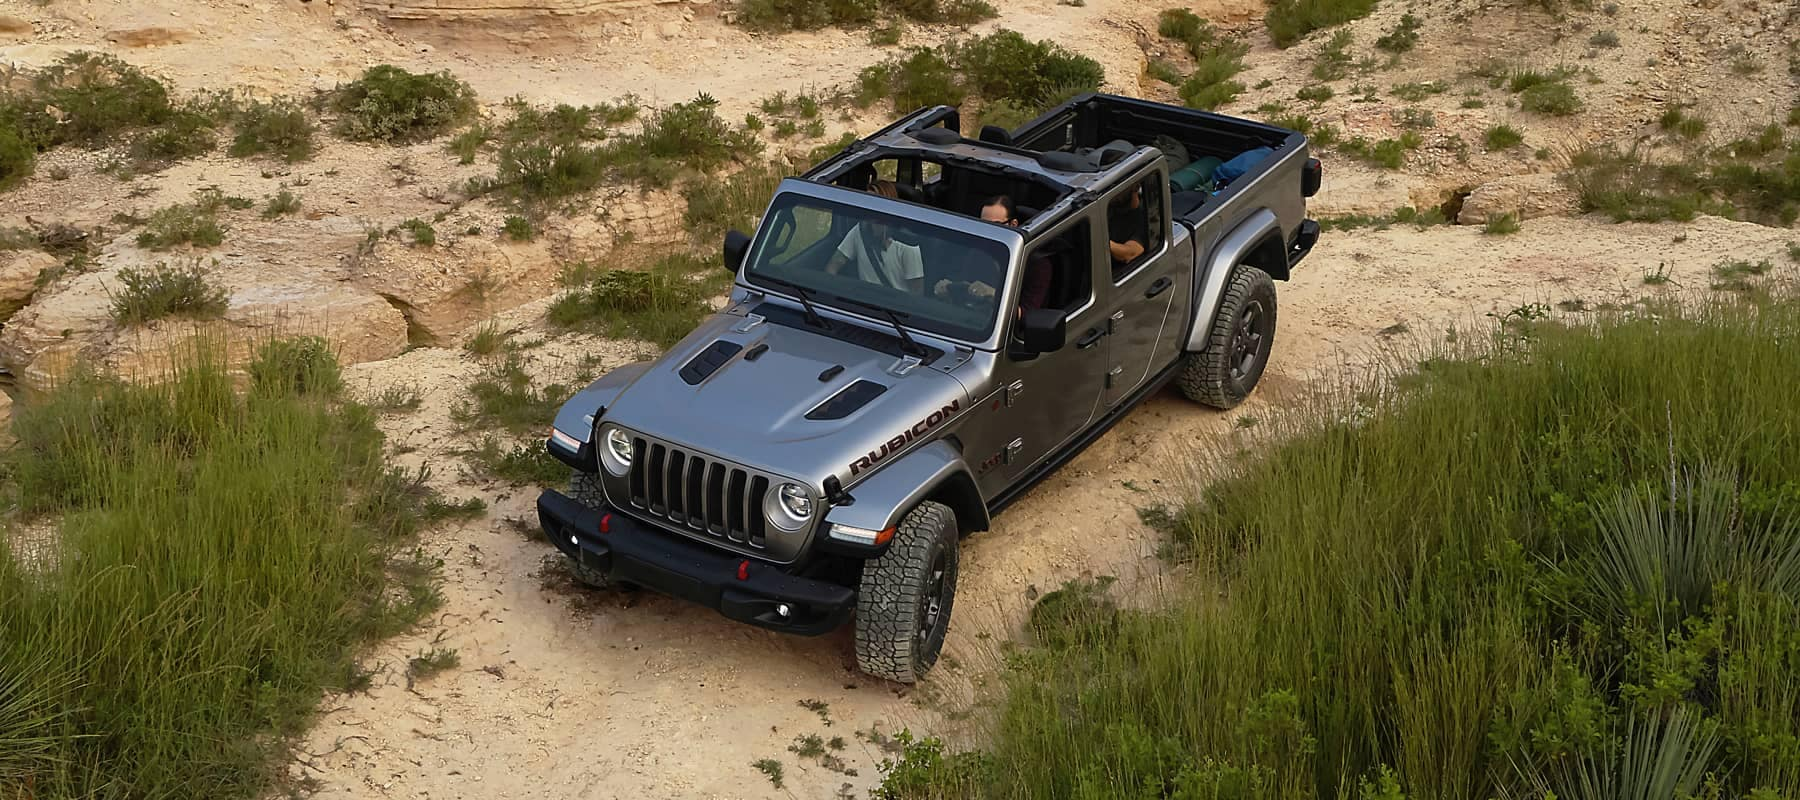 2020 Jeep Gladiator driving on rocky mountain